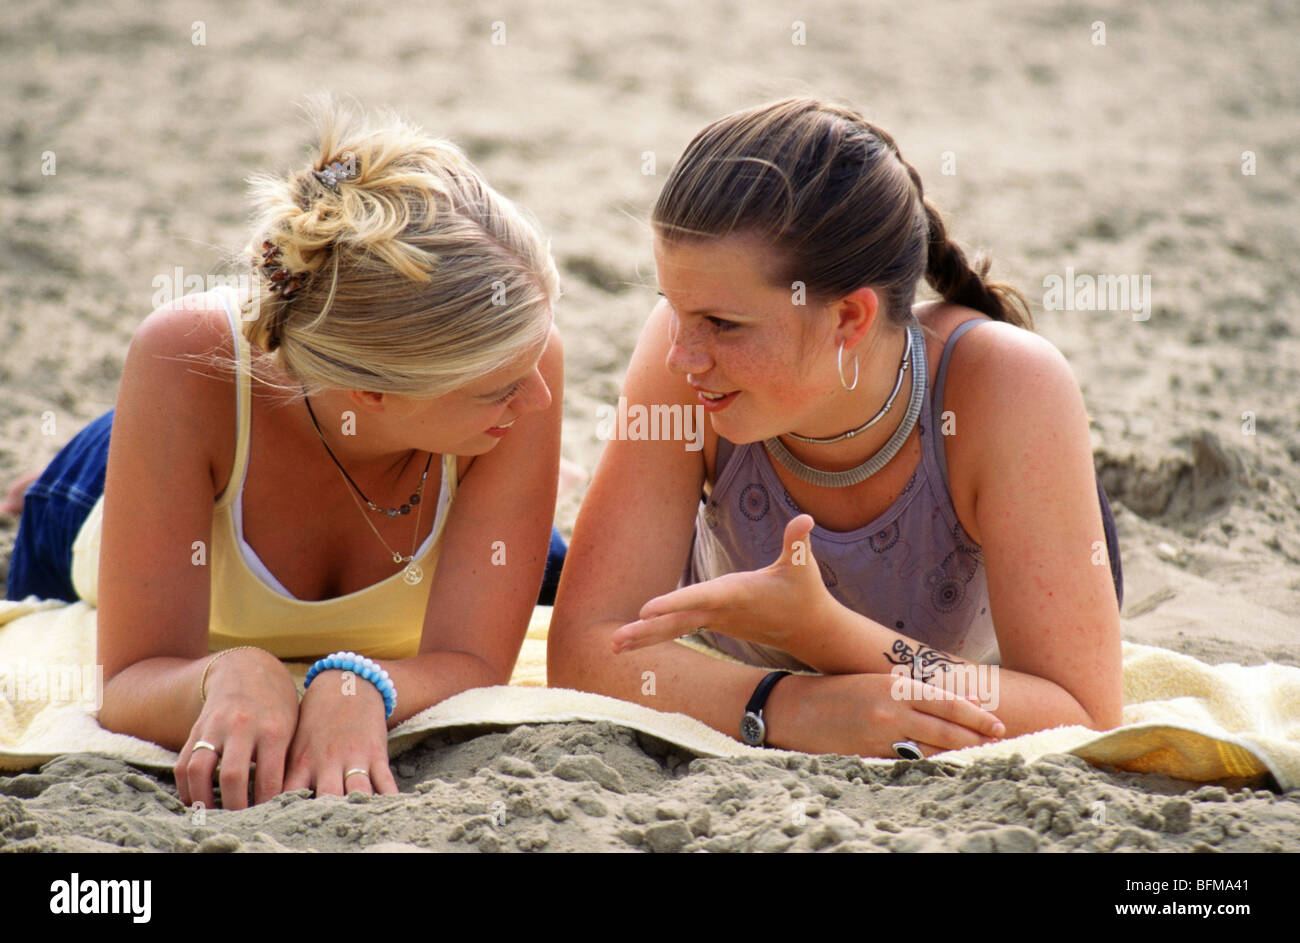 Young friends on beach - SerieCVS100018082 Stock Photo